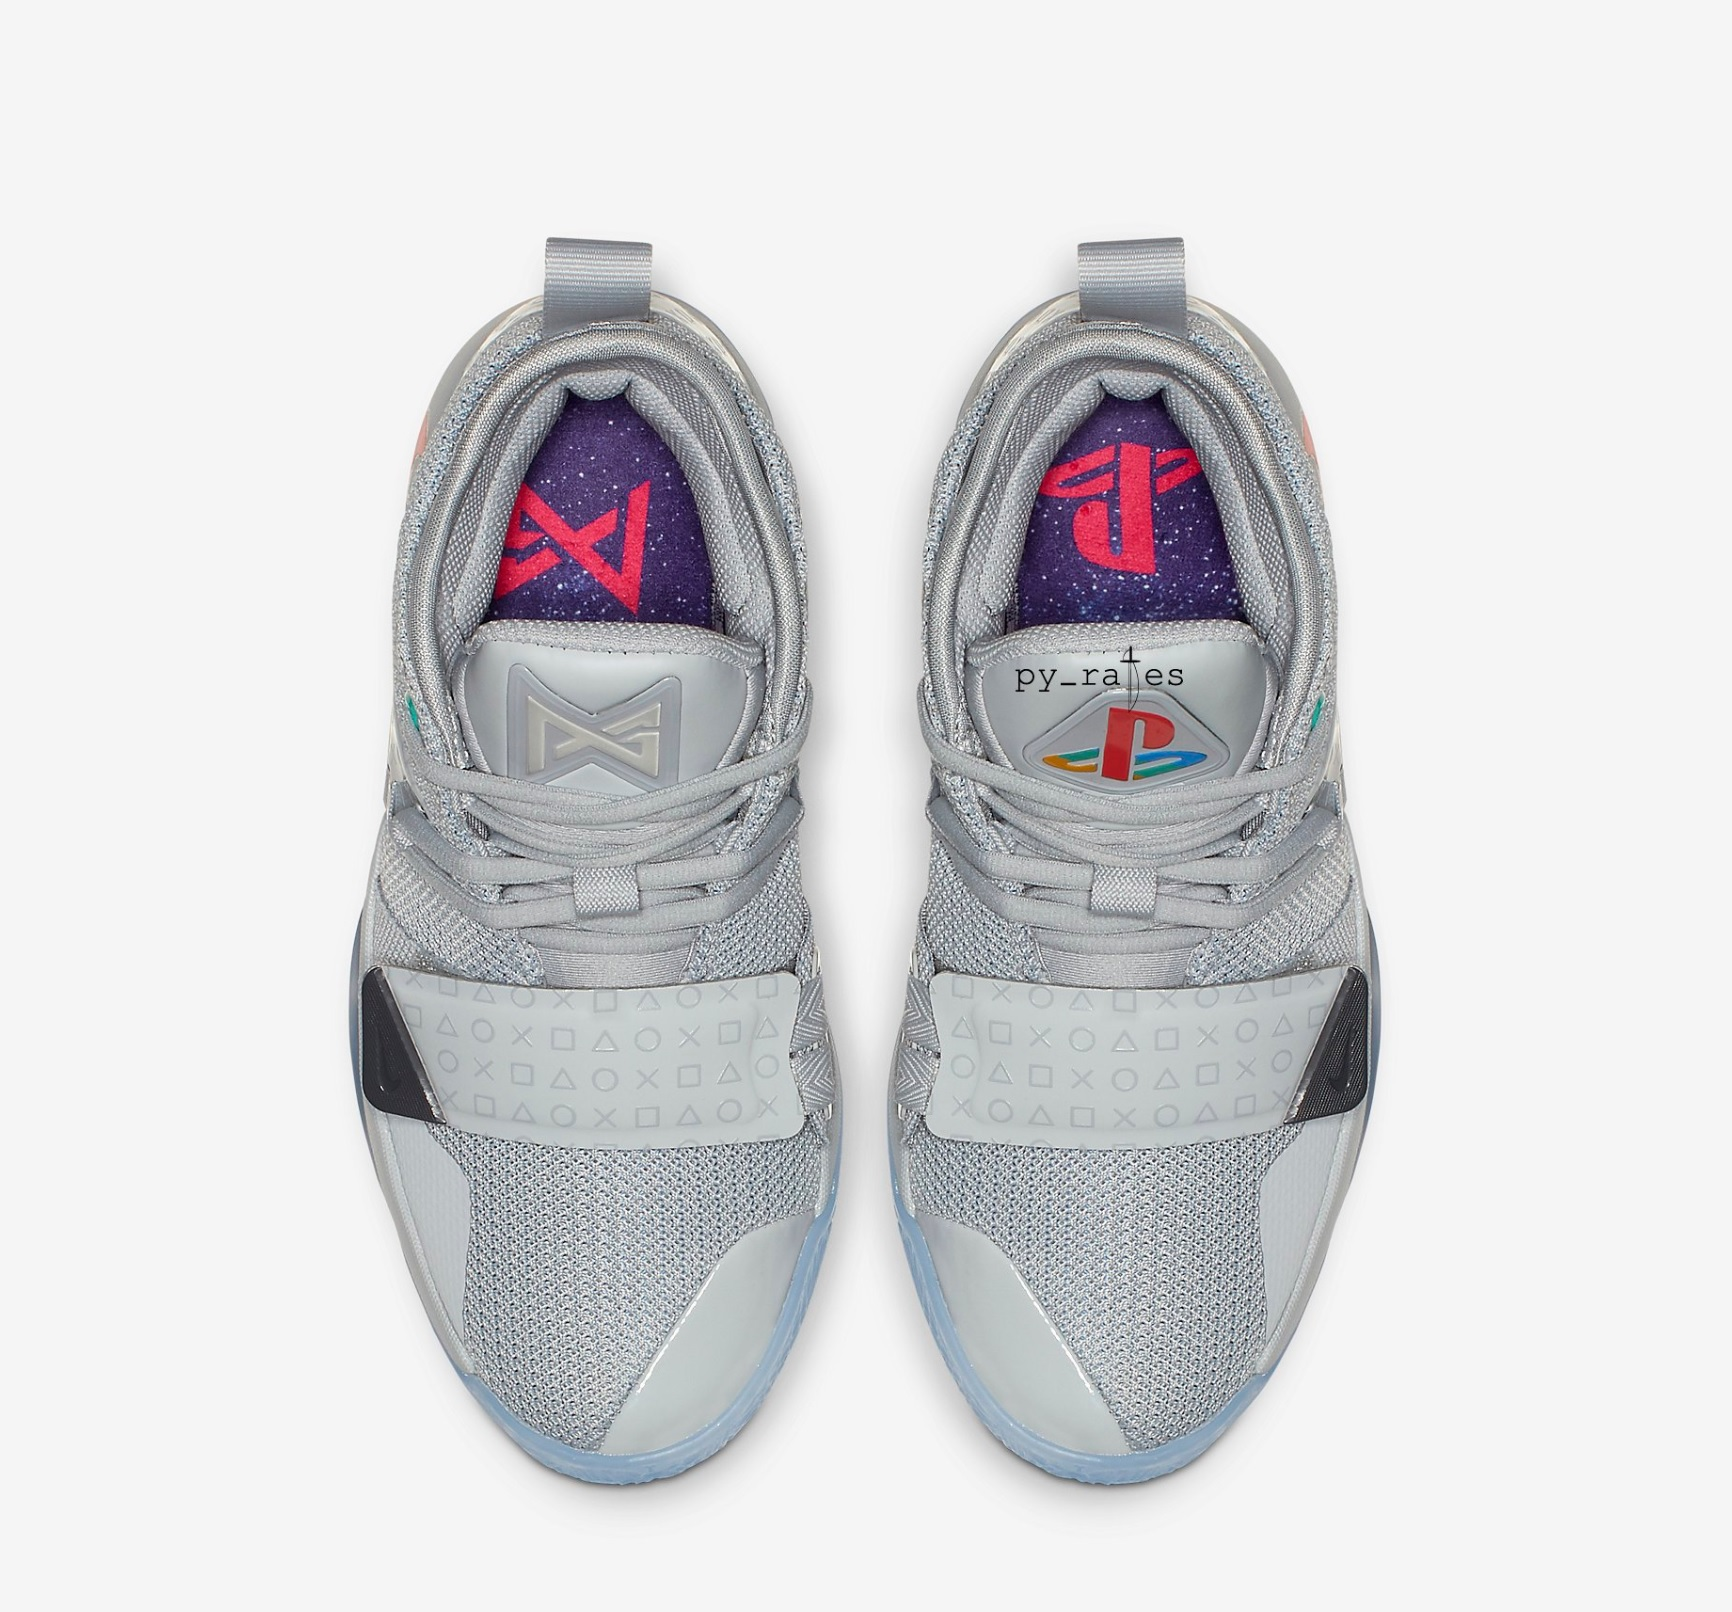 5a328c969d9 Nike & PlayStation Are Releasing More Special Collaboration Shoes ...